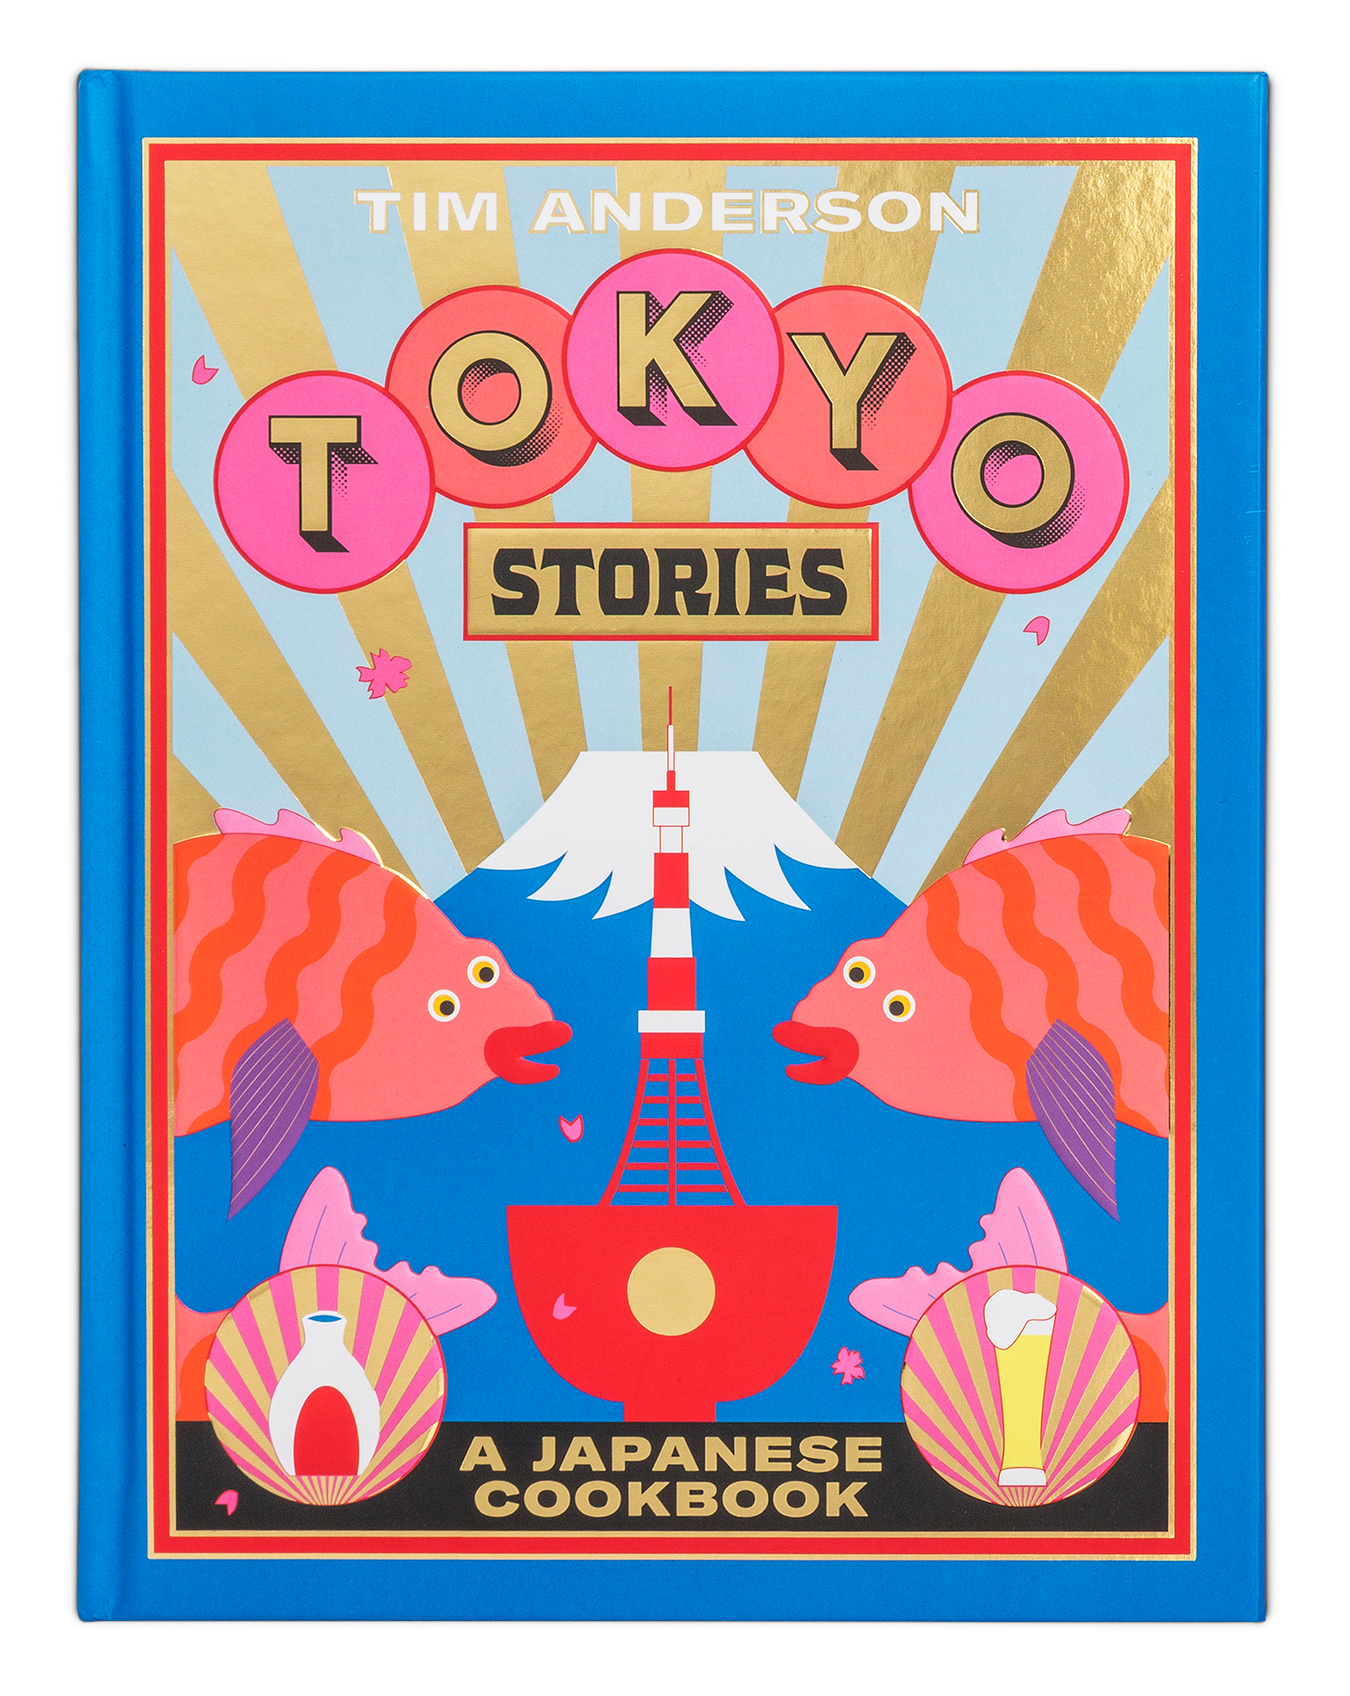 Tokyo Stories recipe book by Tim Anderson